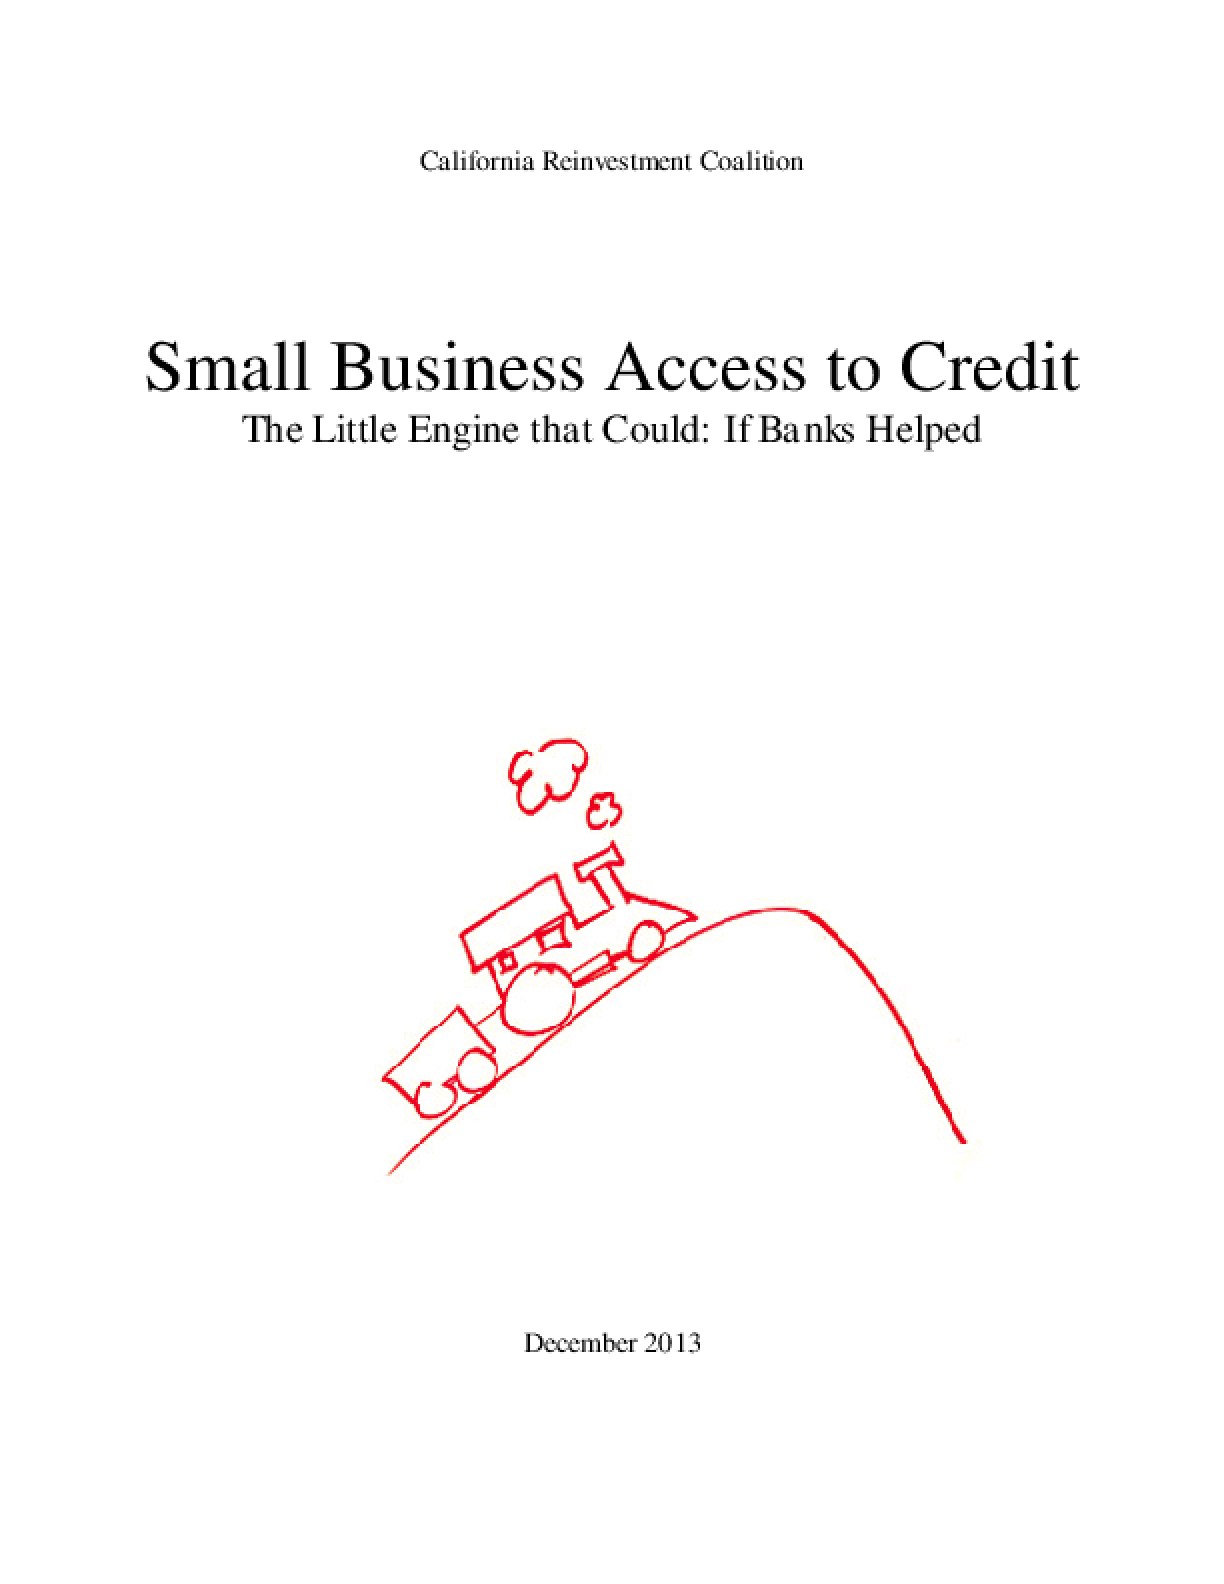 Small Business Access to Credit- The Little Engine that Could: If Banks Would Help